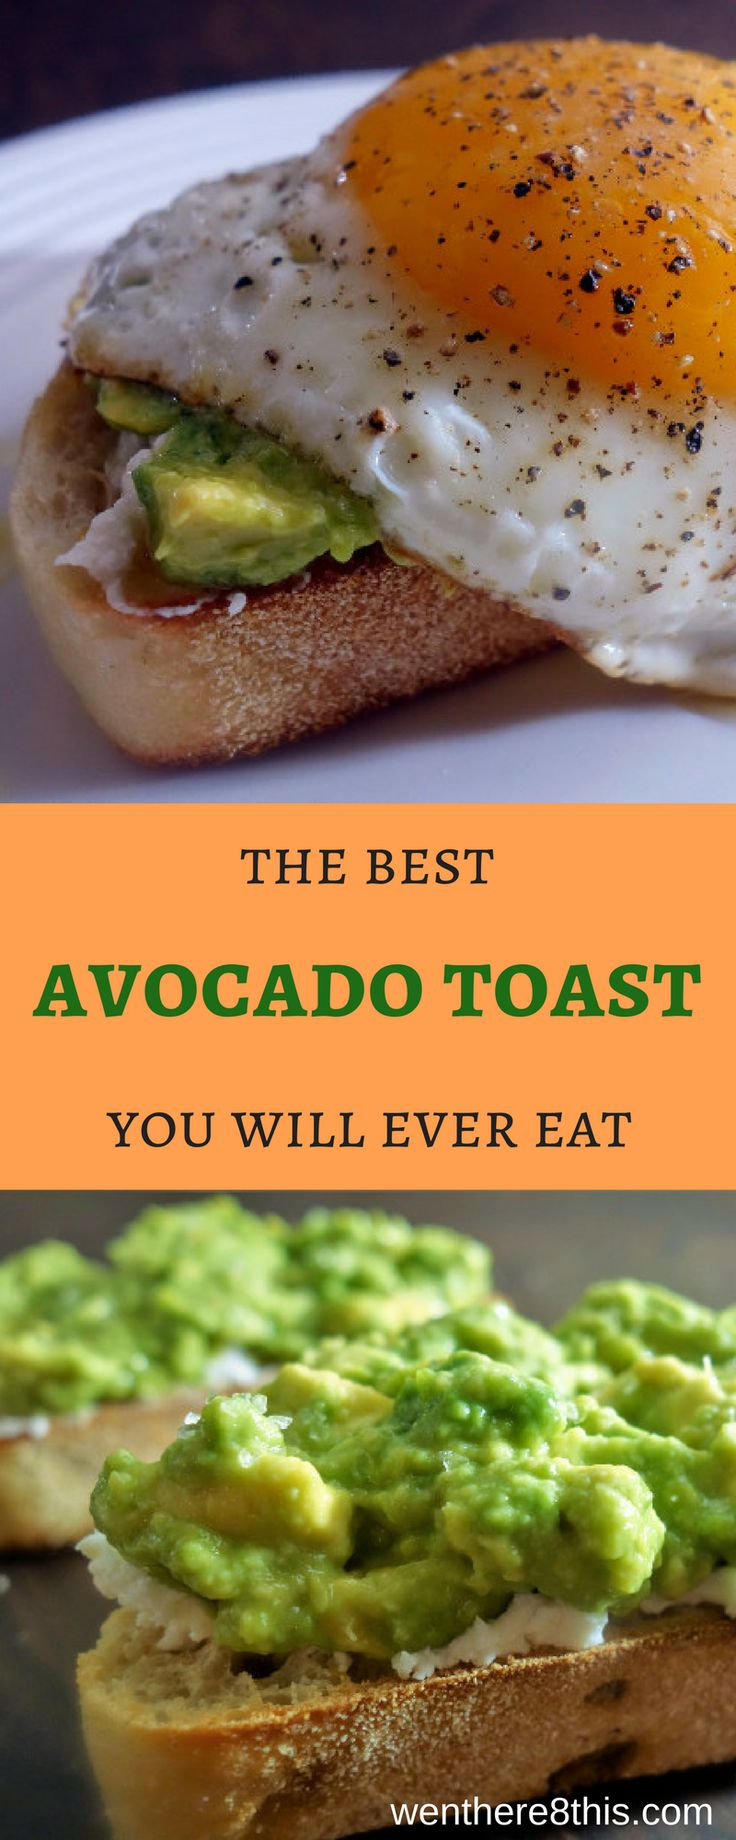 Learn how to make the best avocado toast you will ever eat. Tired of paying $15 for avocado toast when you go out? Well, here you can make your own avocado toast at home, and it will be just as good (probably better) than that restaurant version. breakfast recipes, avocado toast recipes, avocado toast easy, avocado recipes, brunch recipes, fried egg easy, learn how to make avocado toast, homemade avocado toast easy, healthy recipes, healthy avocado toast recipe, easy avocado toast